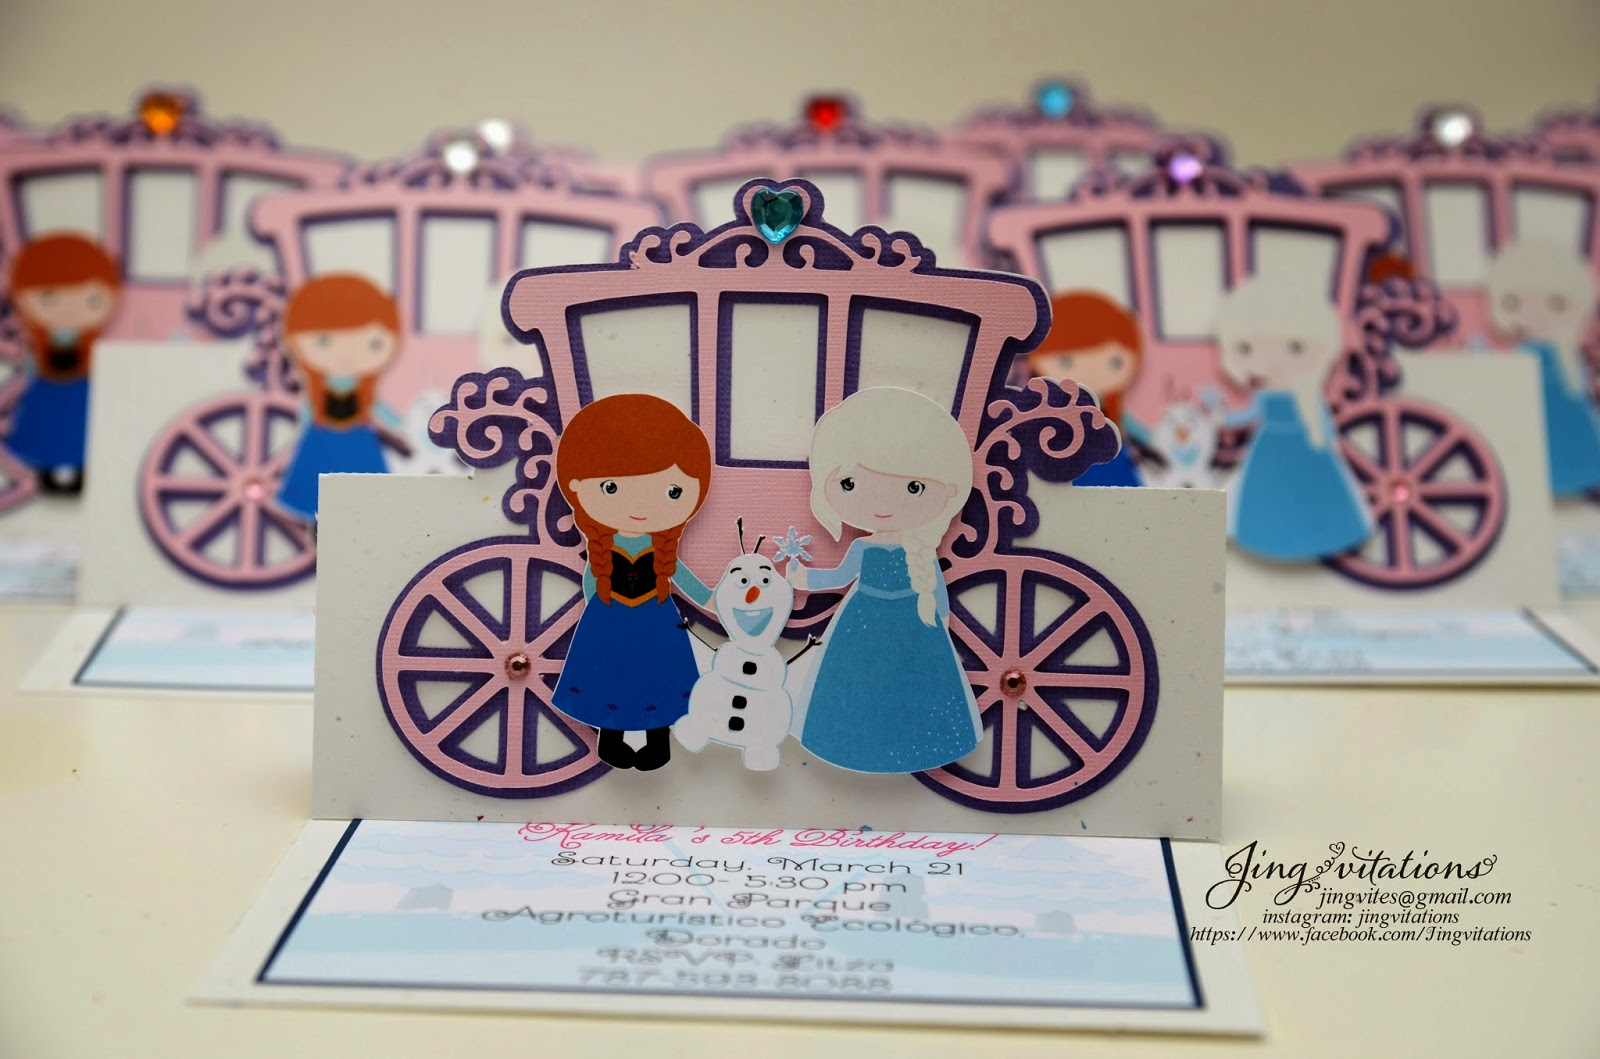 handmade invitations, frozen fever